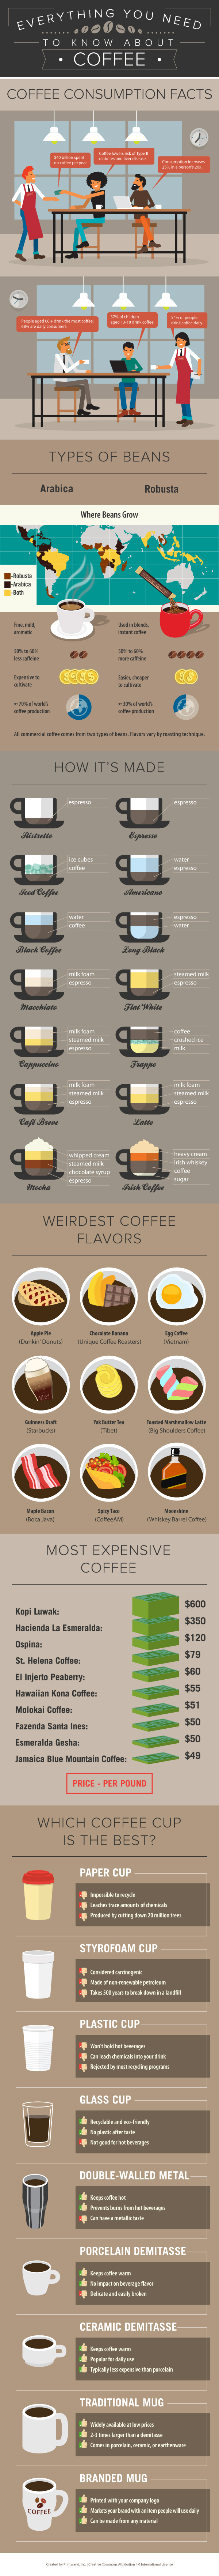 Coffee Infographic: Everything You Need To Know About Coffee